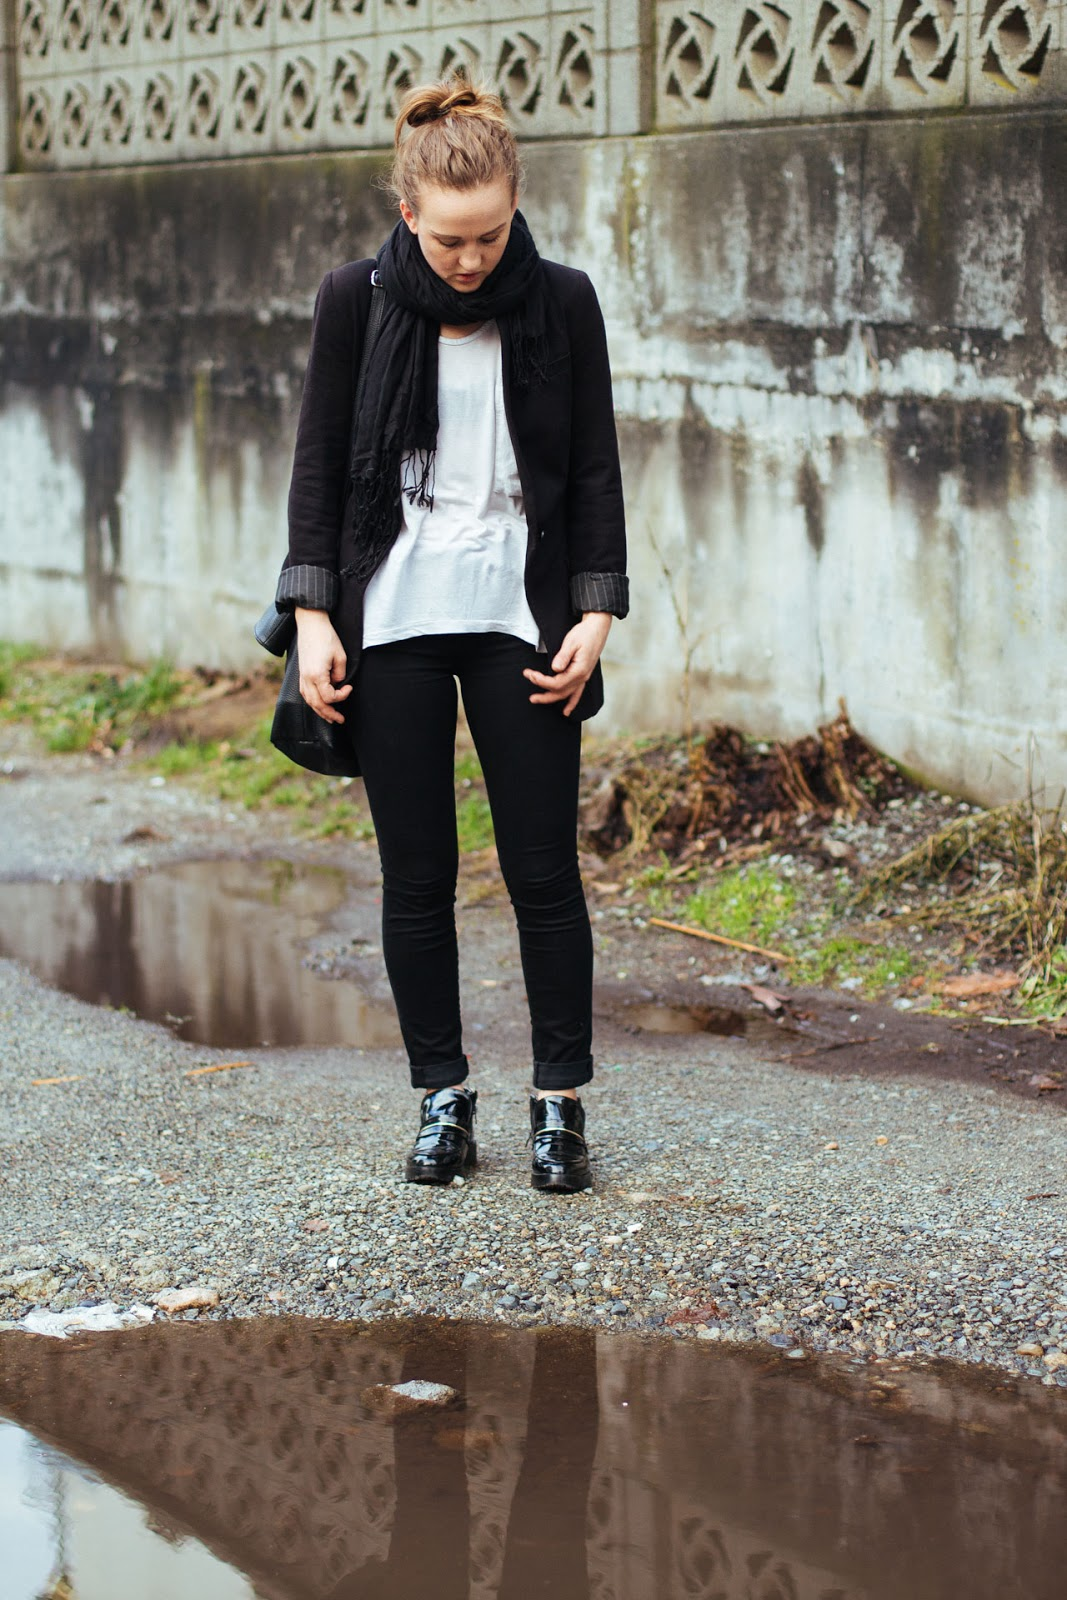 Canadian Fashion and Personal Style Blogger - Outfit